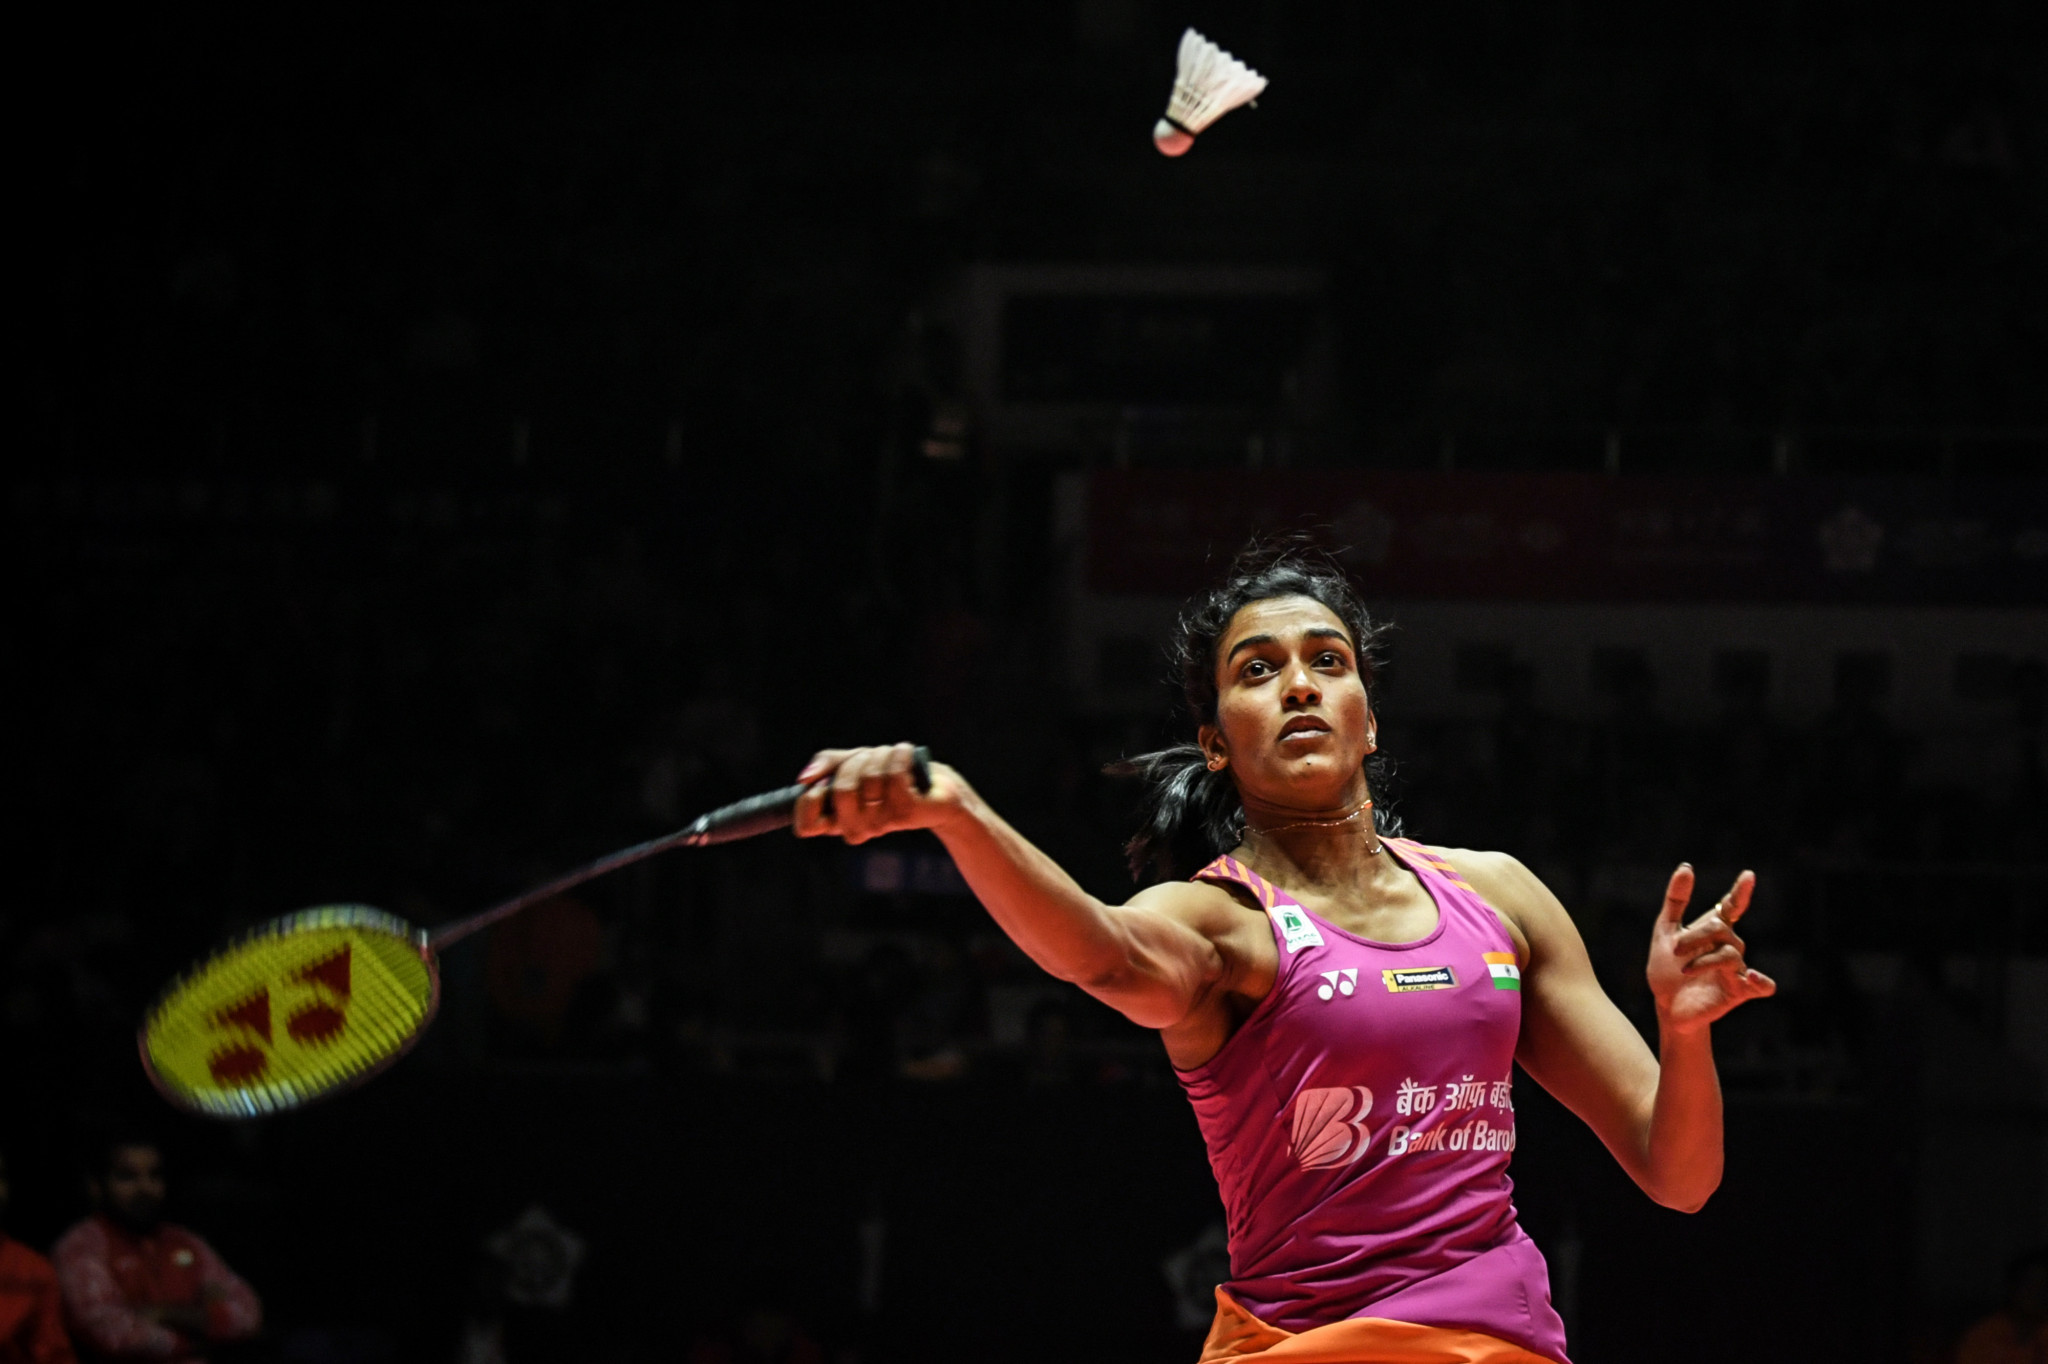 India's Pusarla Venkata Sindhu is through to the quarter-finals of the women's singles event ©Getty Images